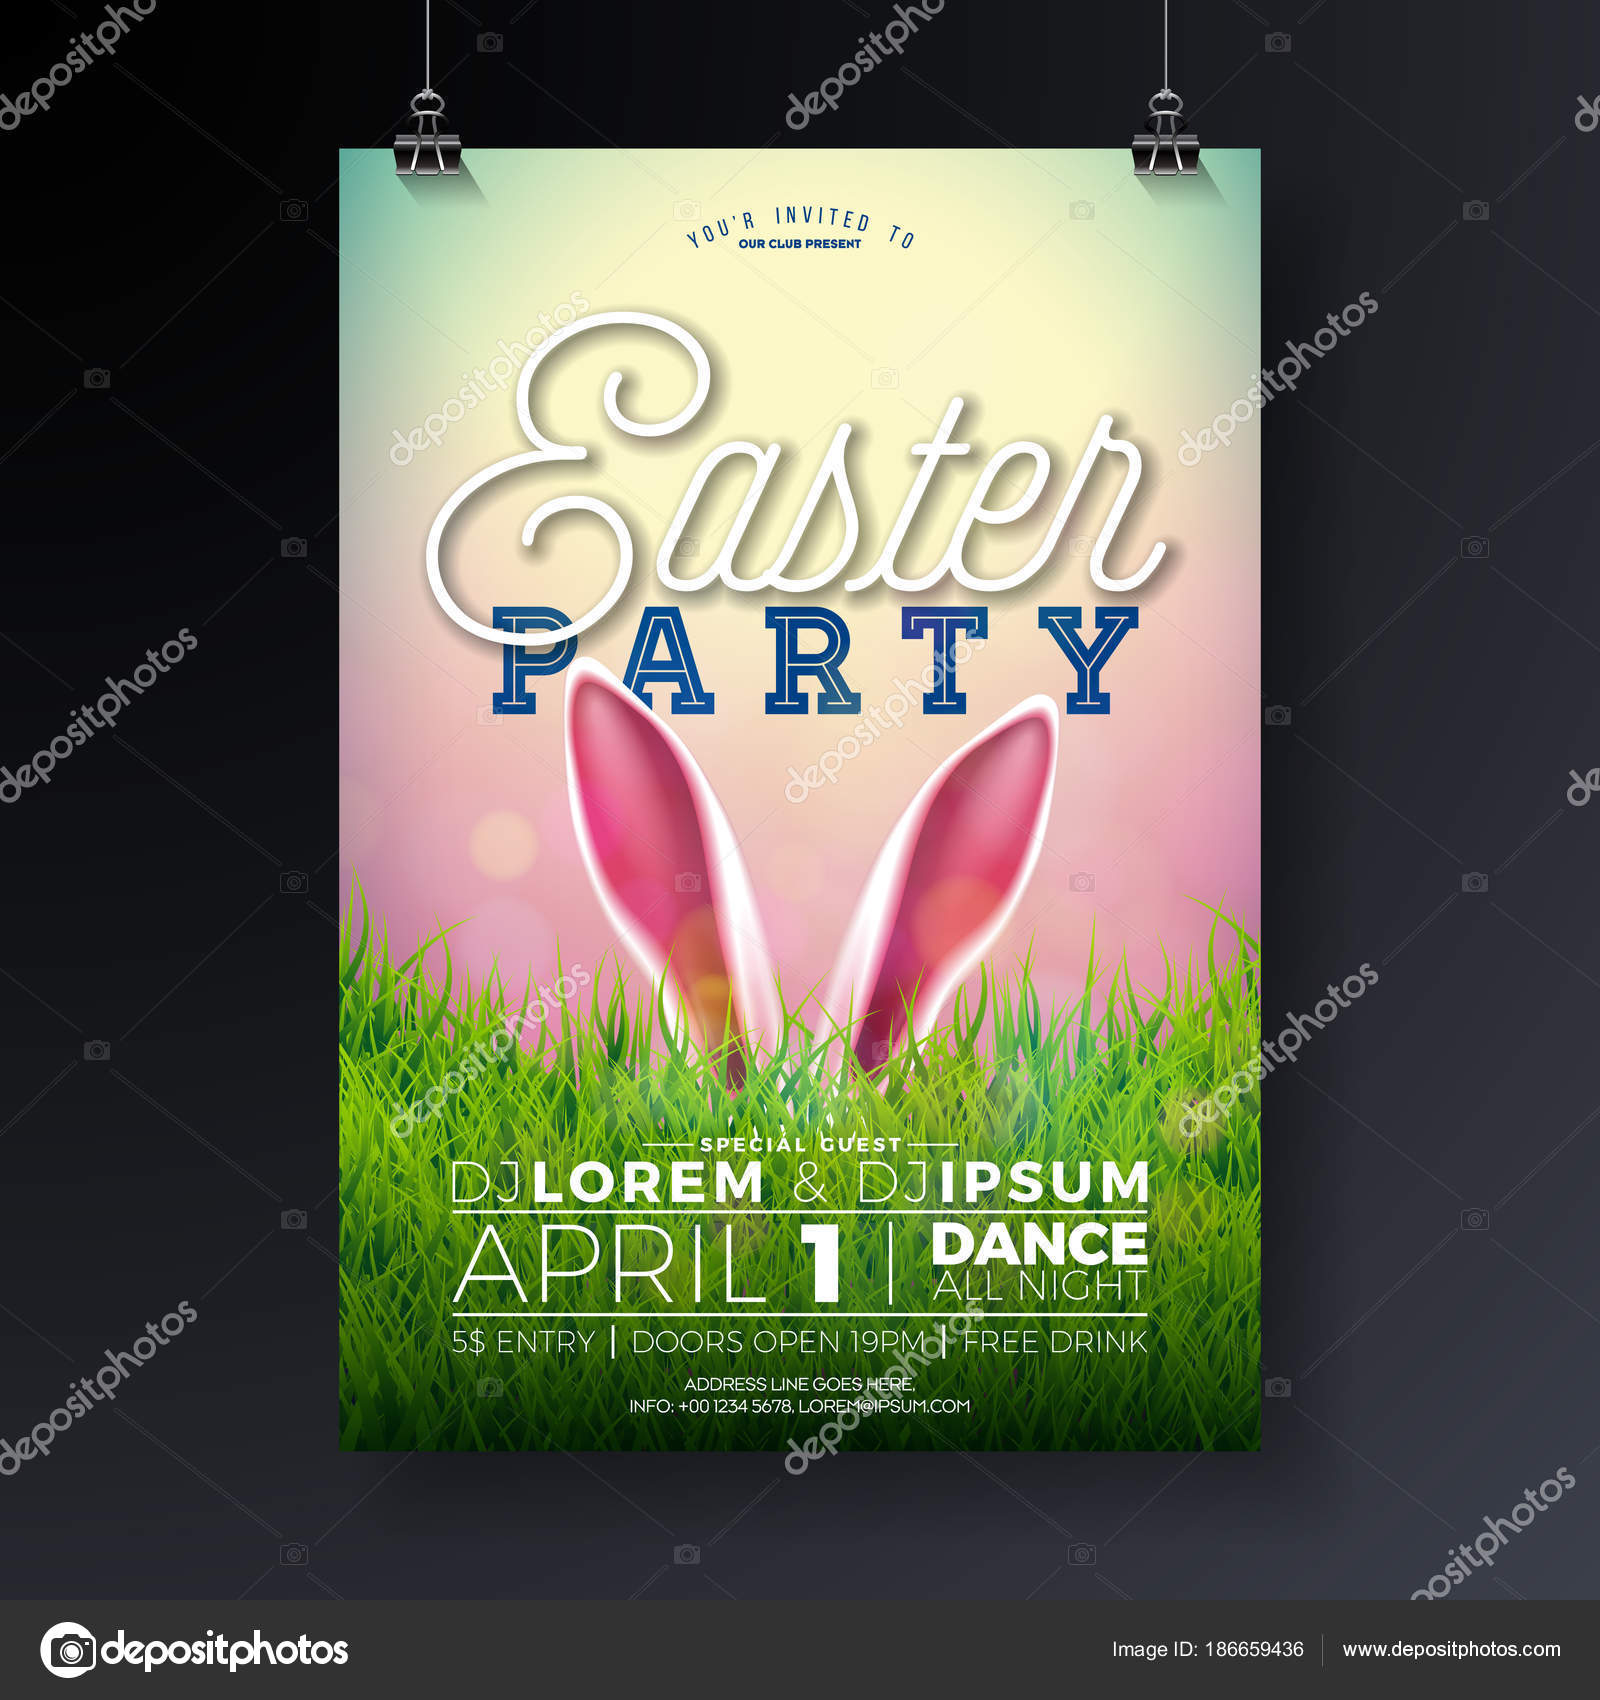 Vector Easter Party Flyer Illustration With Rabbit Ears And Typography Elements On Nature Green Grass Background Spring Holiday Celebration Poster Design